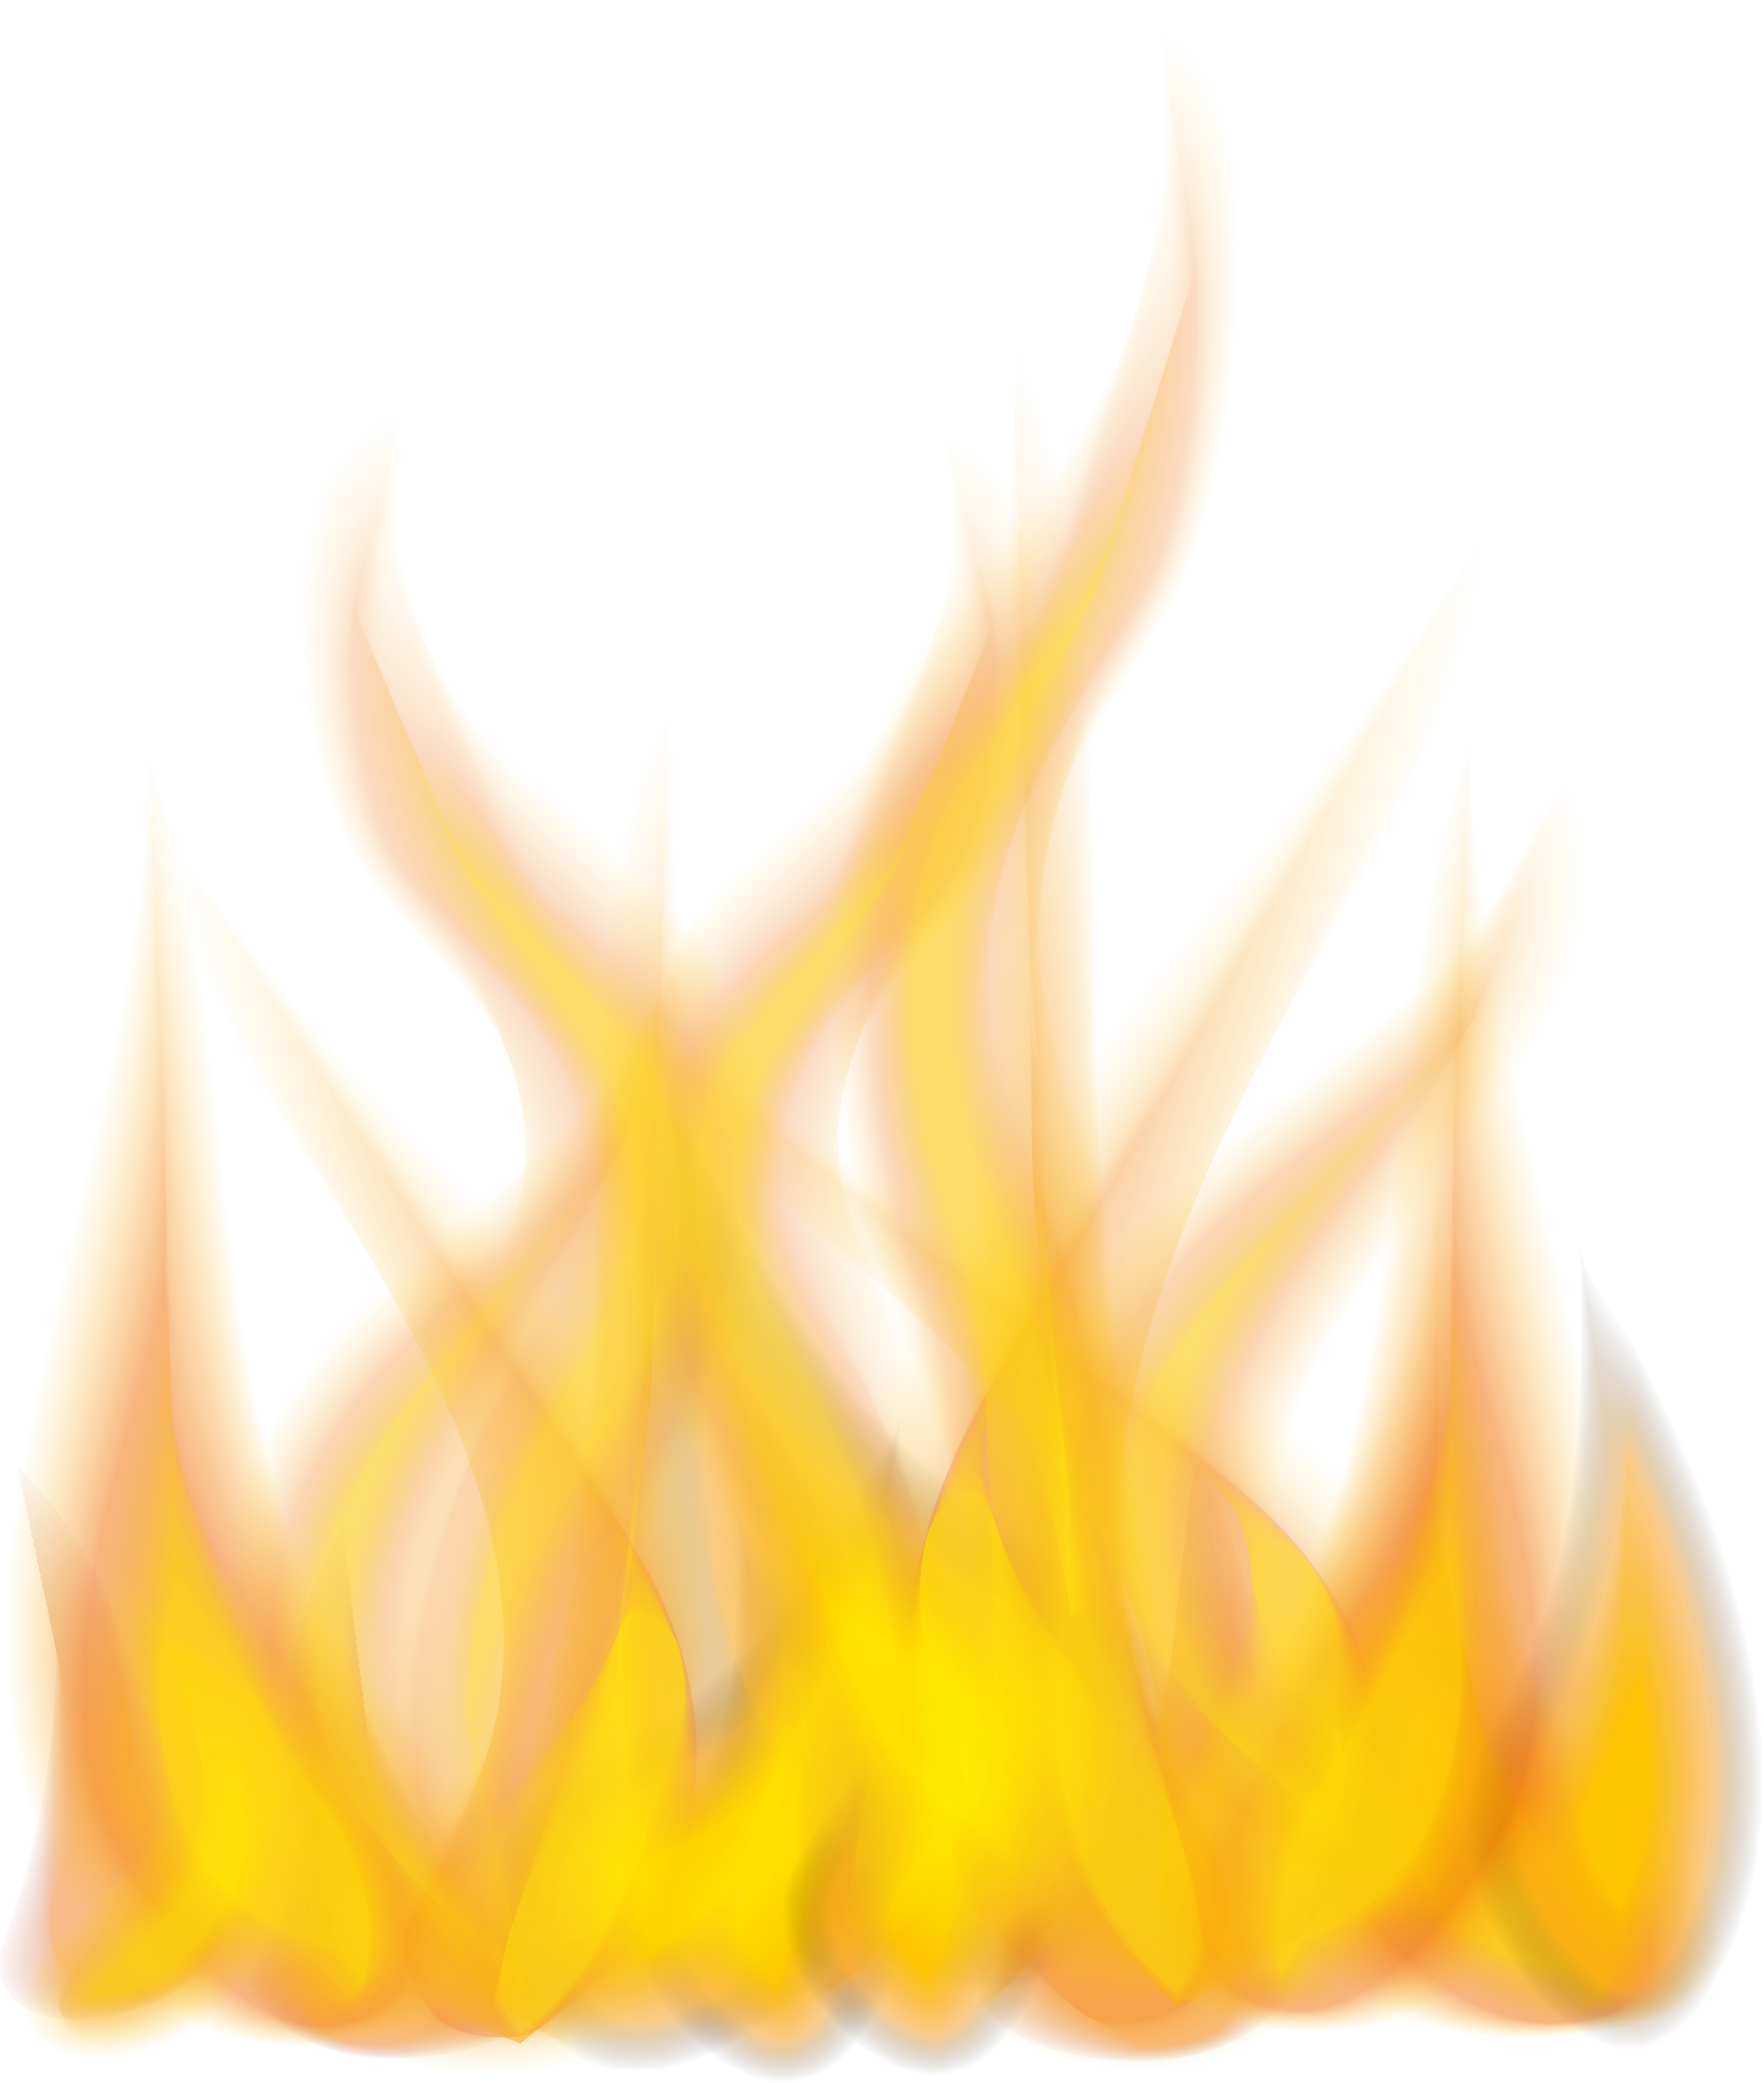 Fire flames png. Clip art image gallery